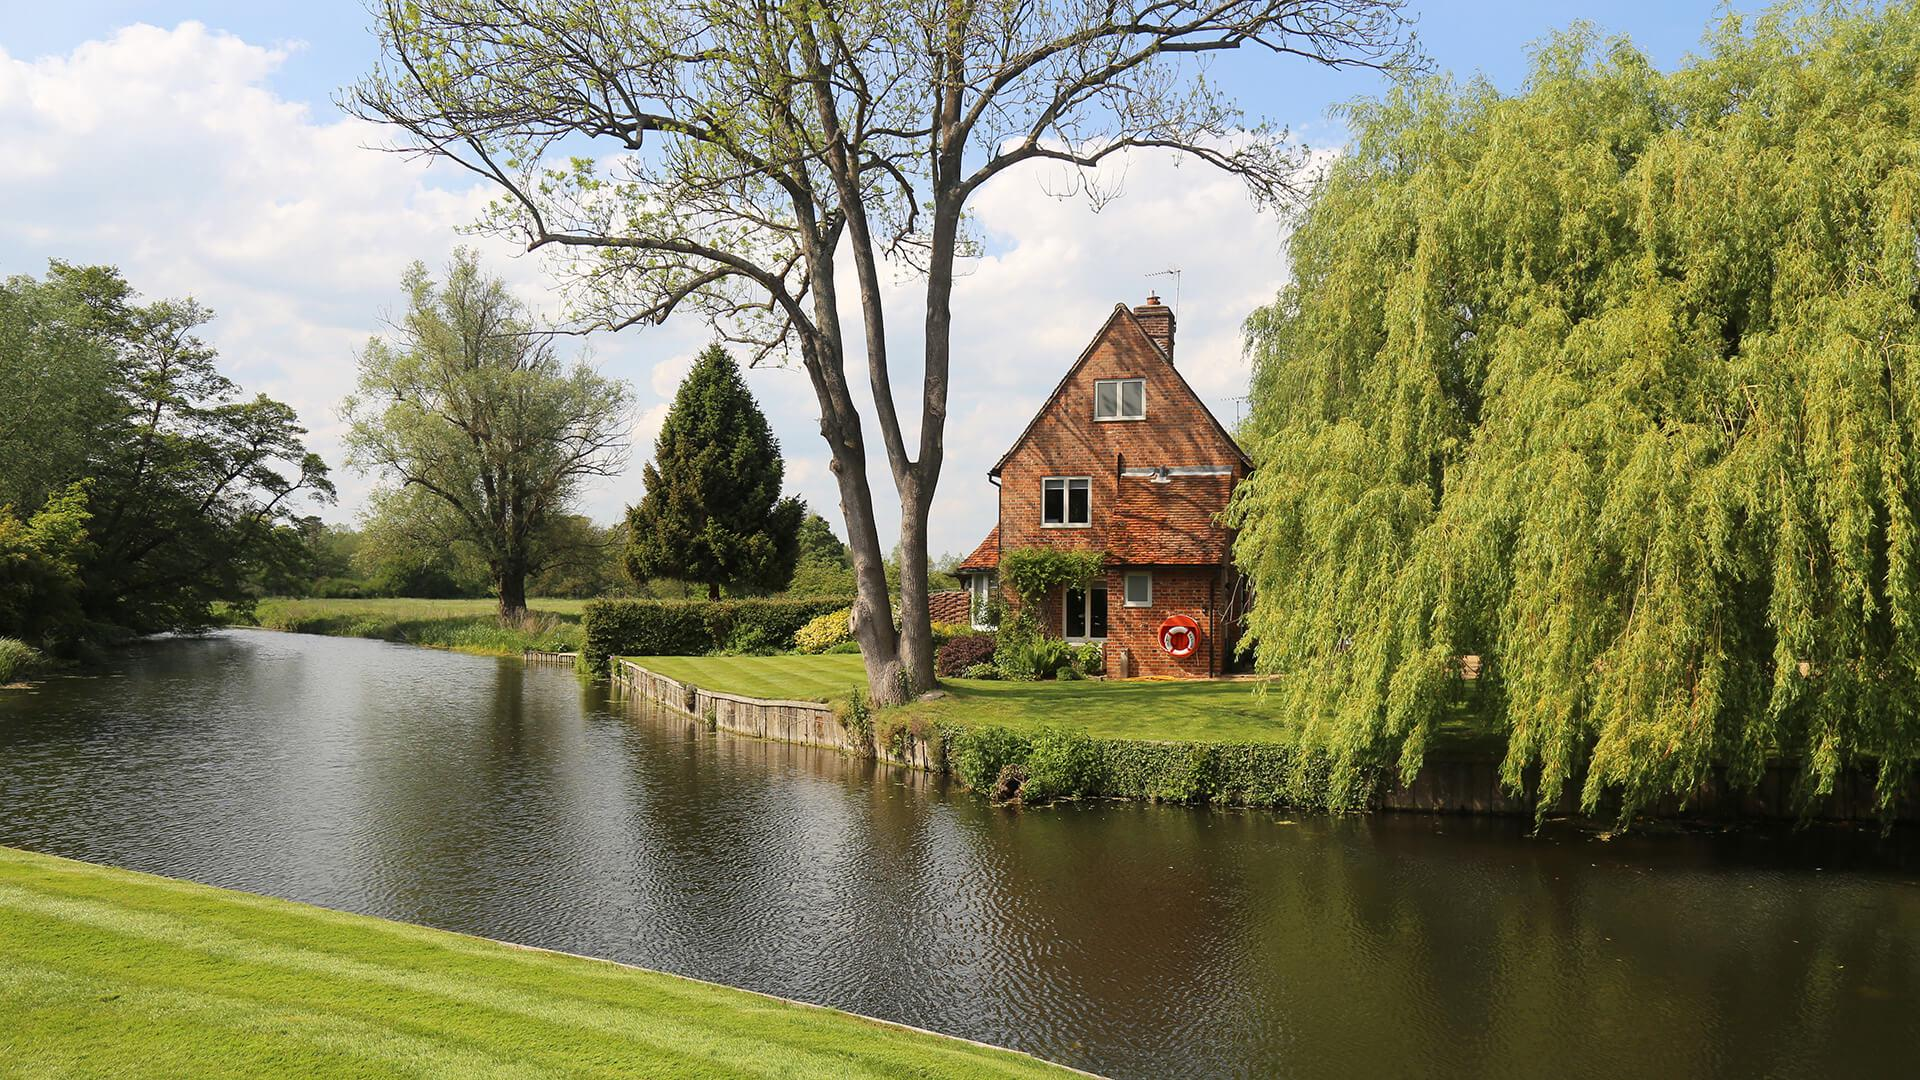 Self-Catering in Essex holidays at Cool Places